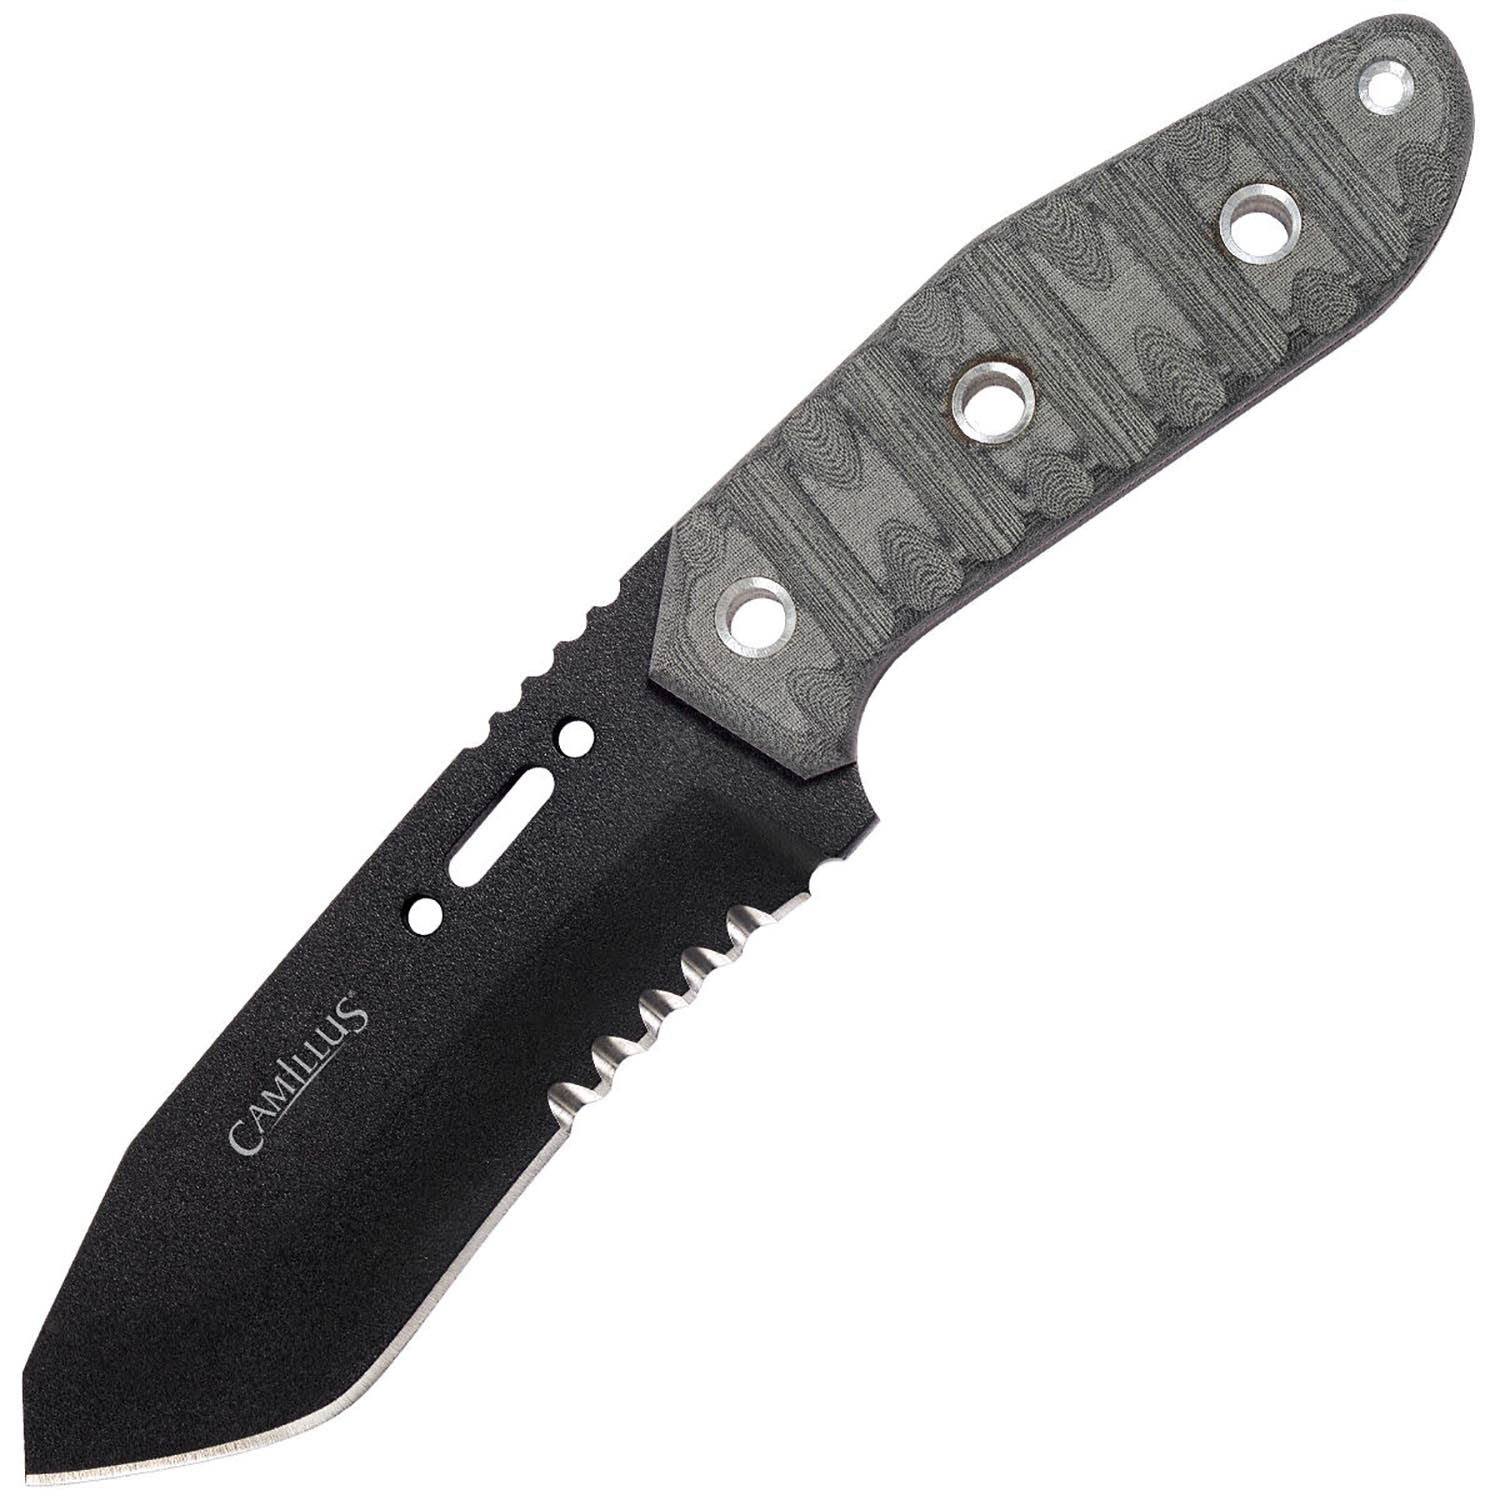 "Camillus CK-9, 9.5"" Fixed Blade Knife, USA 1095 High Carbon Steel, with Sheath and Whistle"